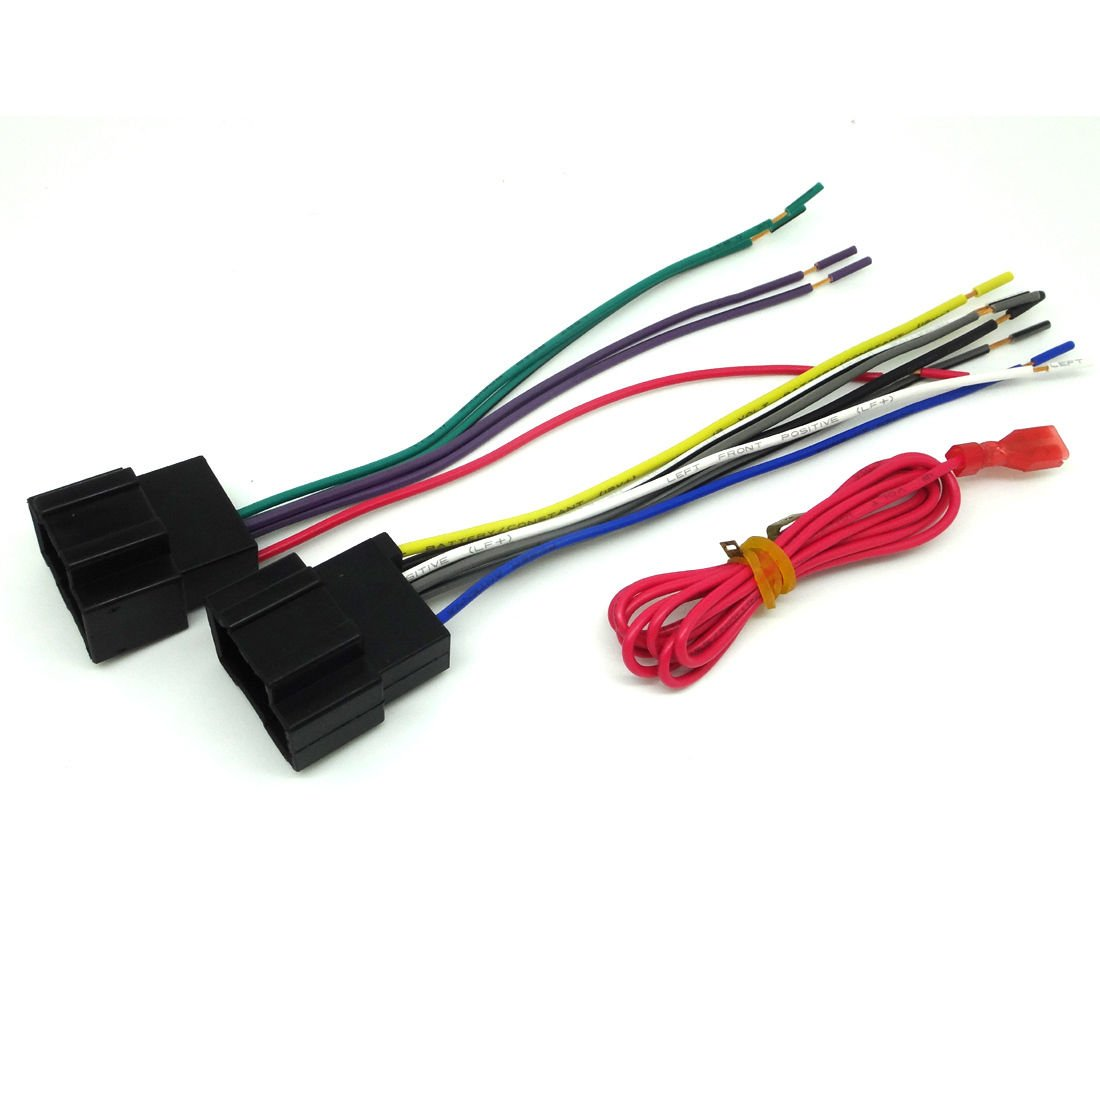 61nu0LRNVFL._SL1100_ amazon com gm car stereo cd player wiring harness wire  at soozxer.org